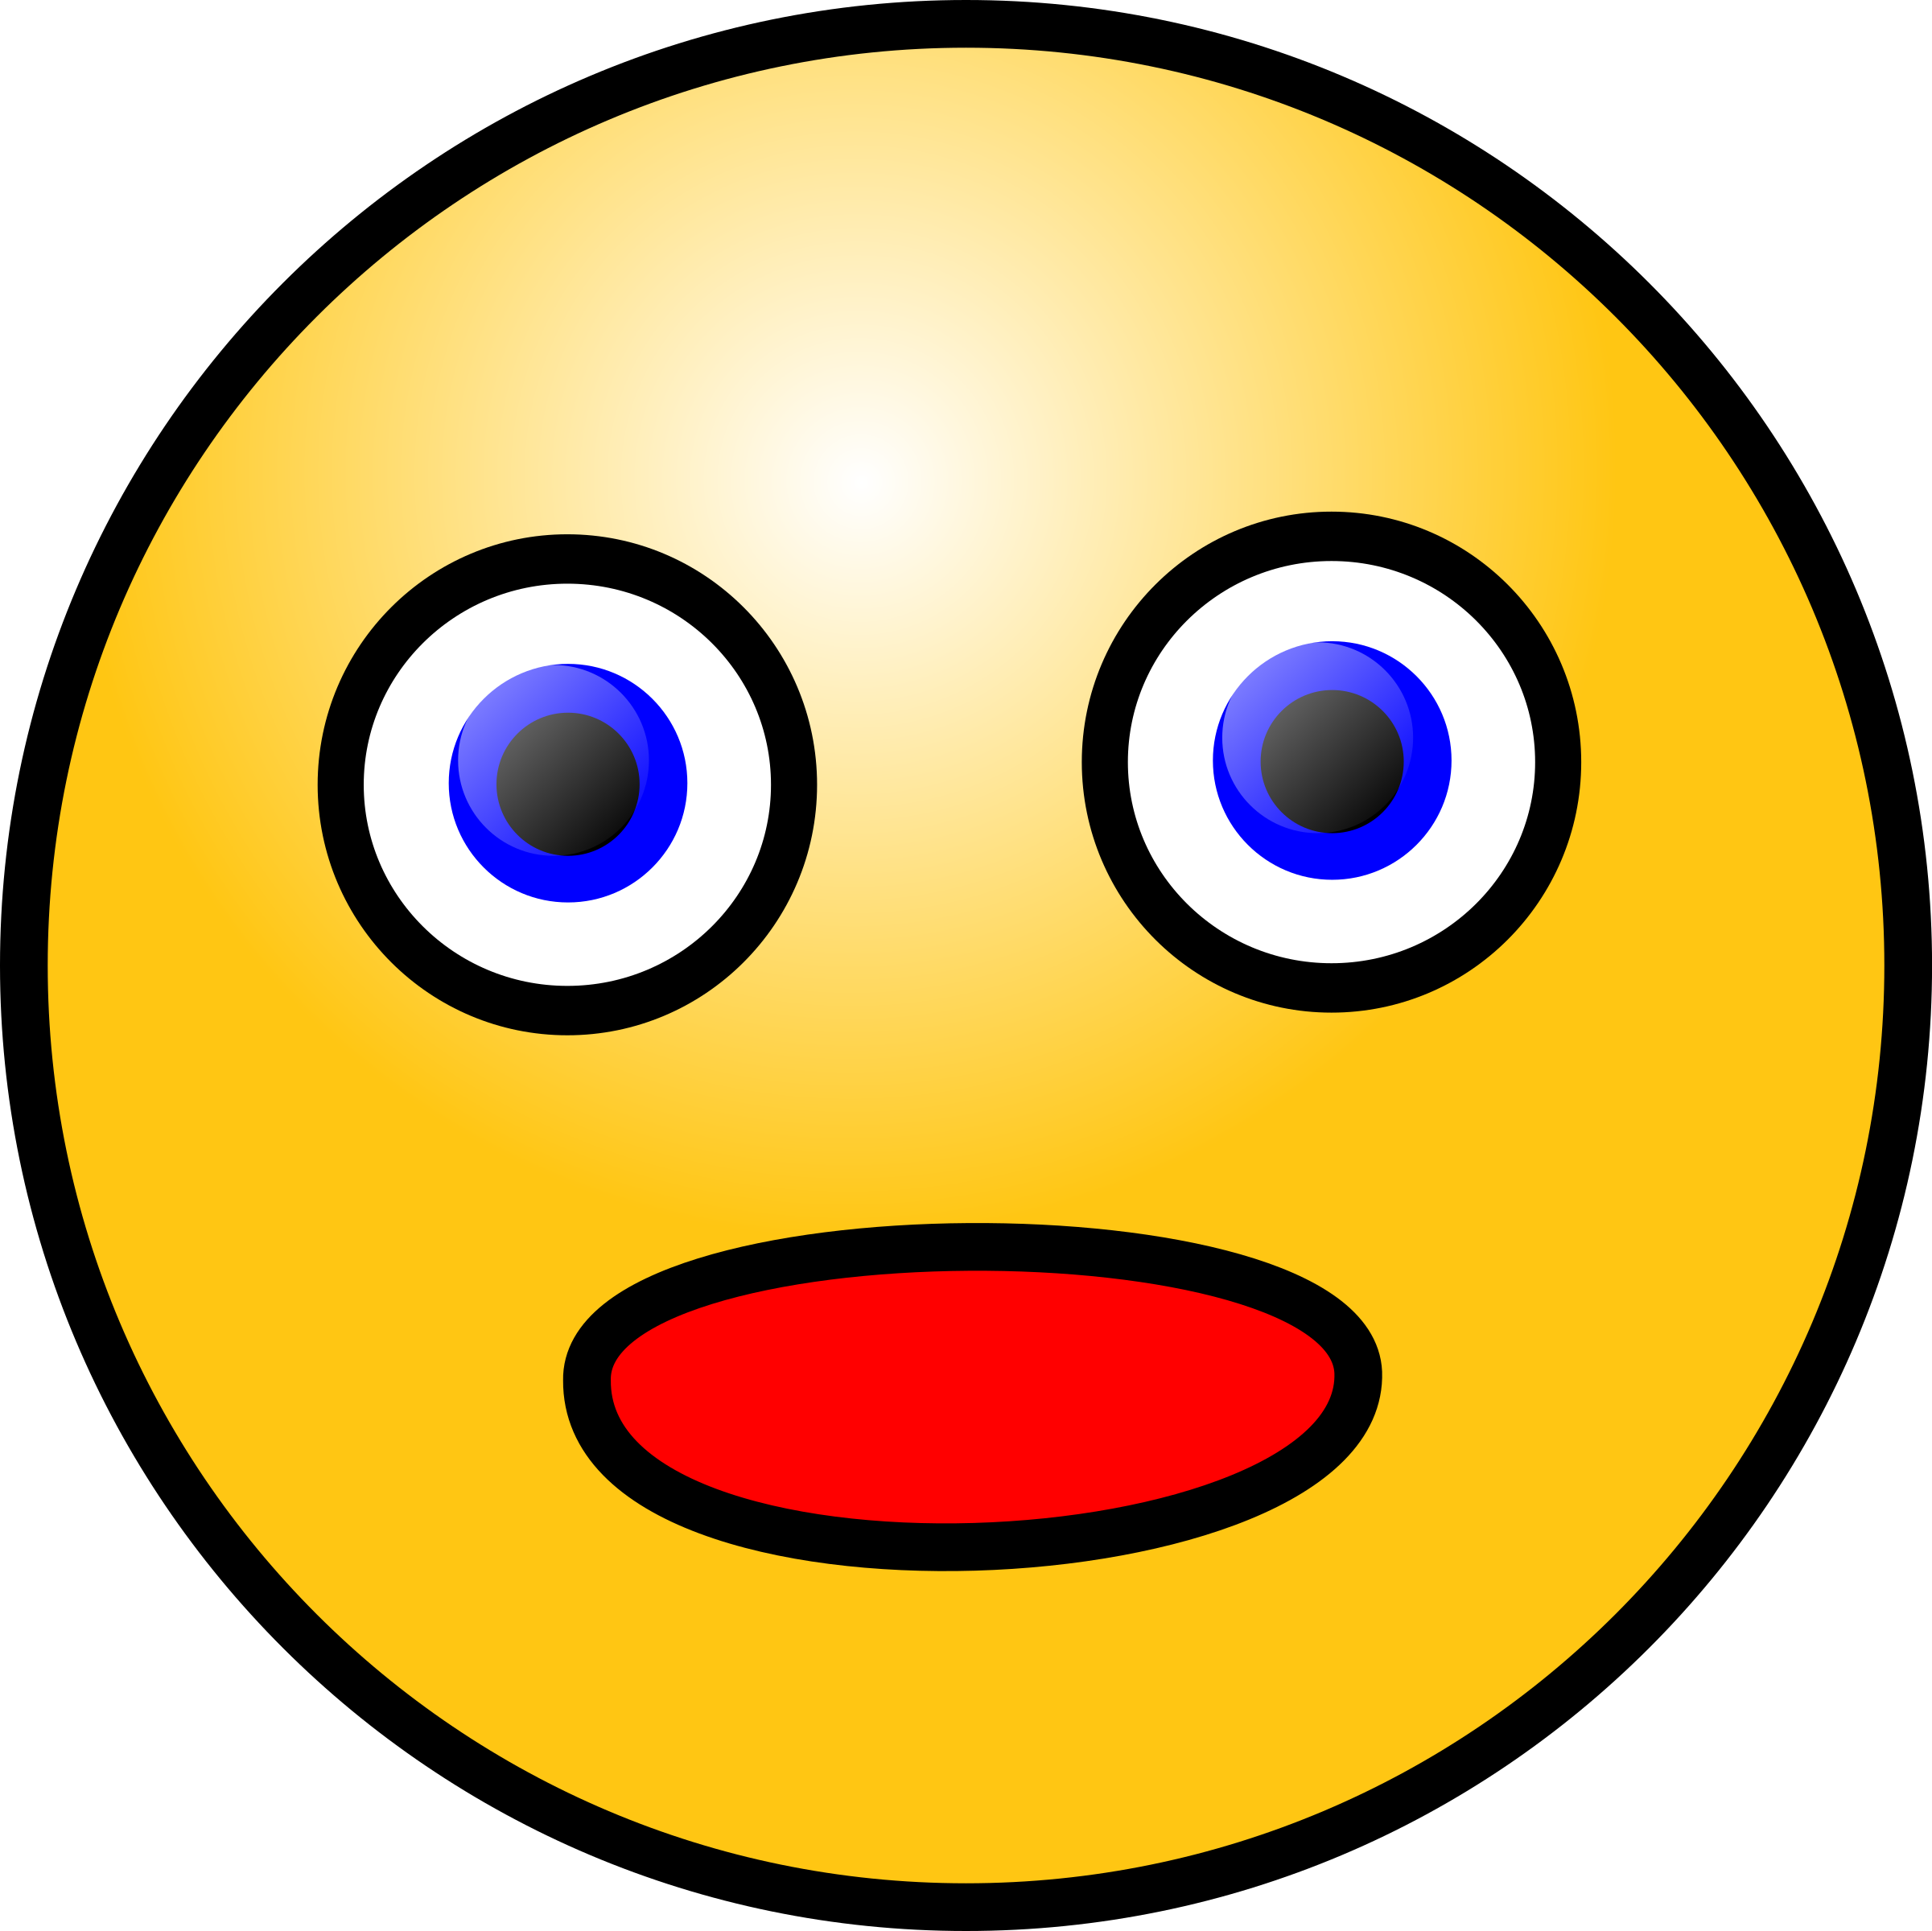 Surprise clipart smiley. Surprised female